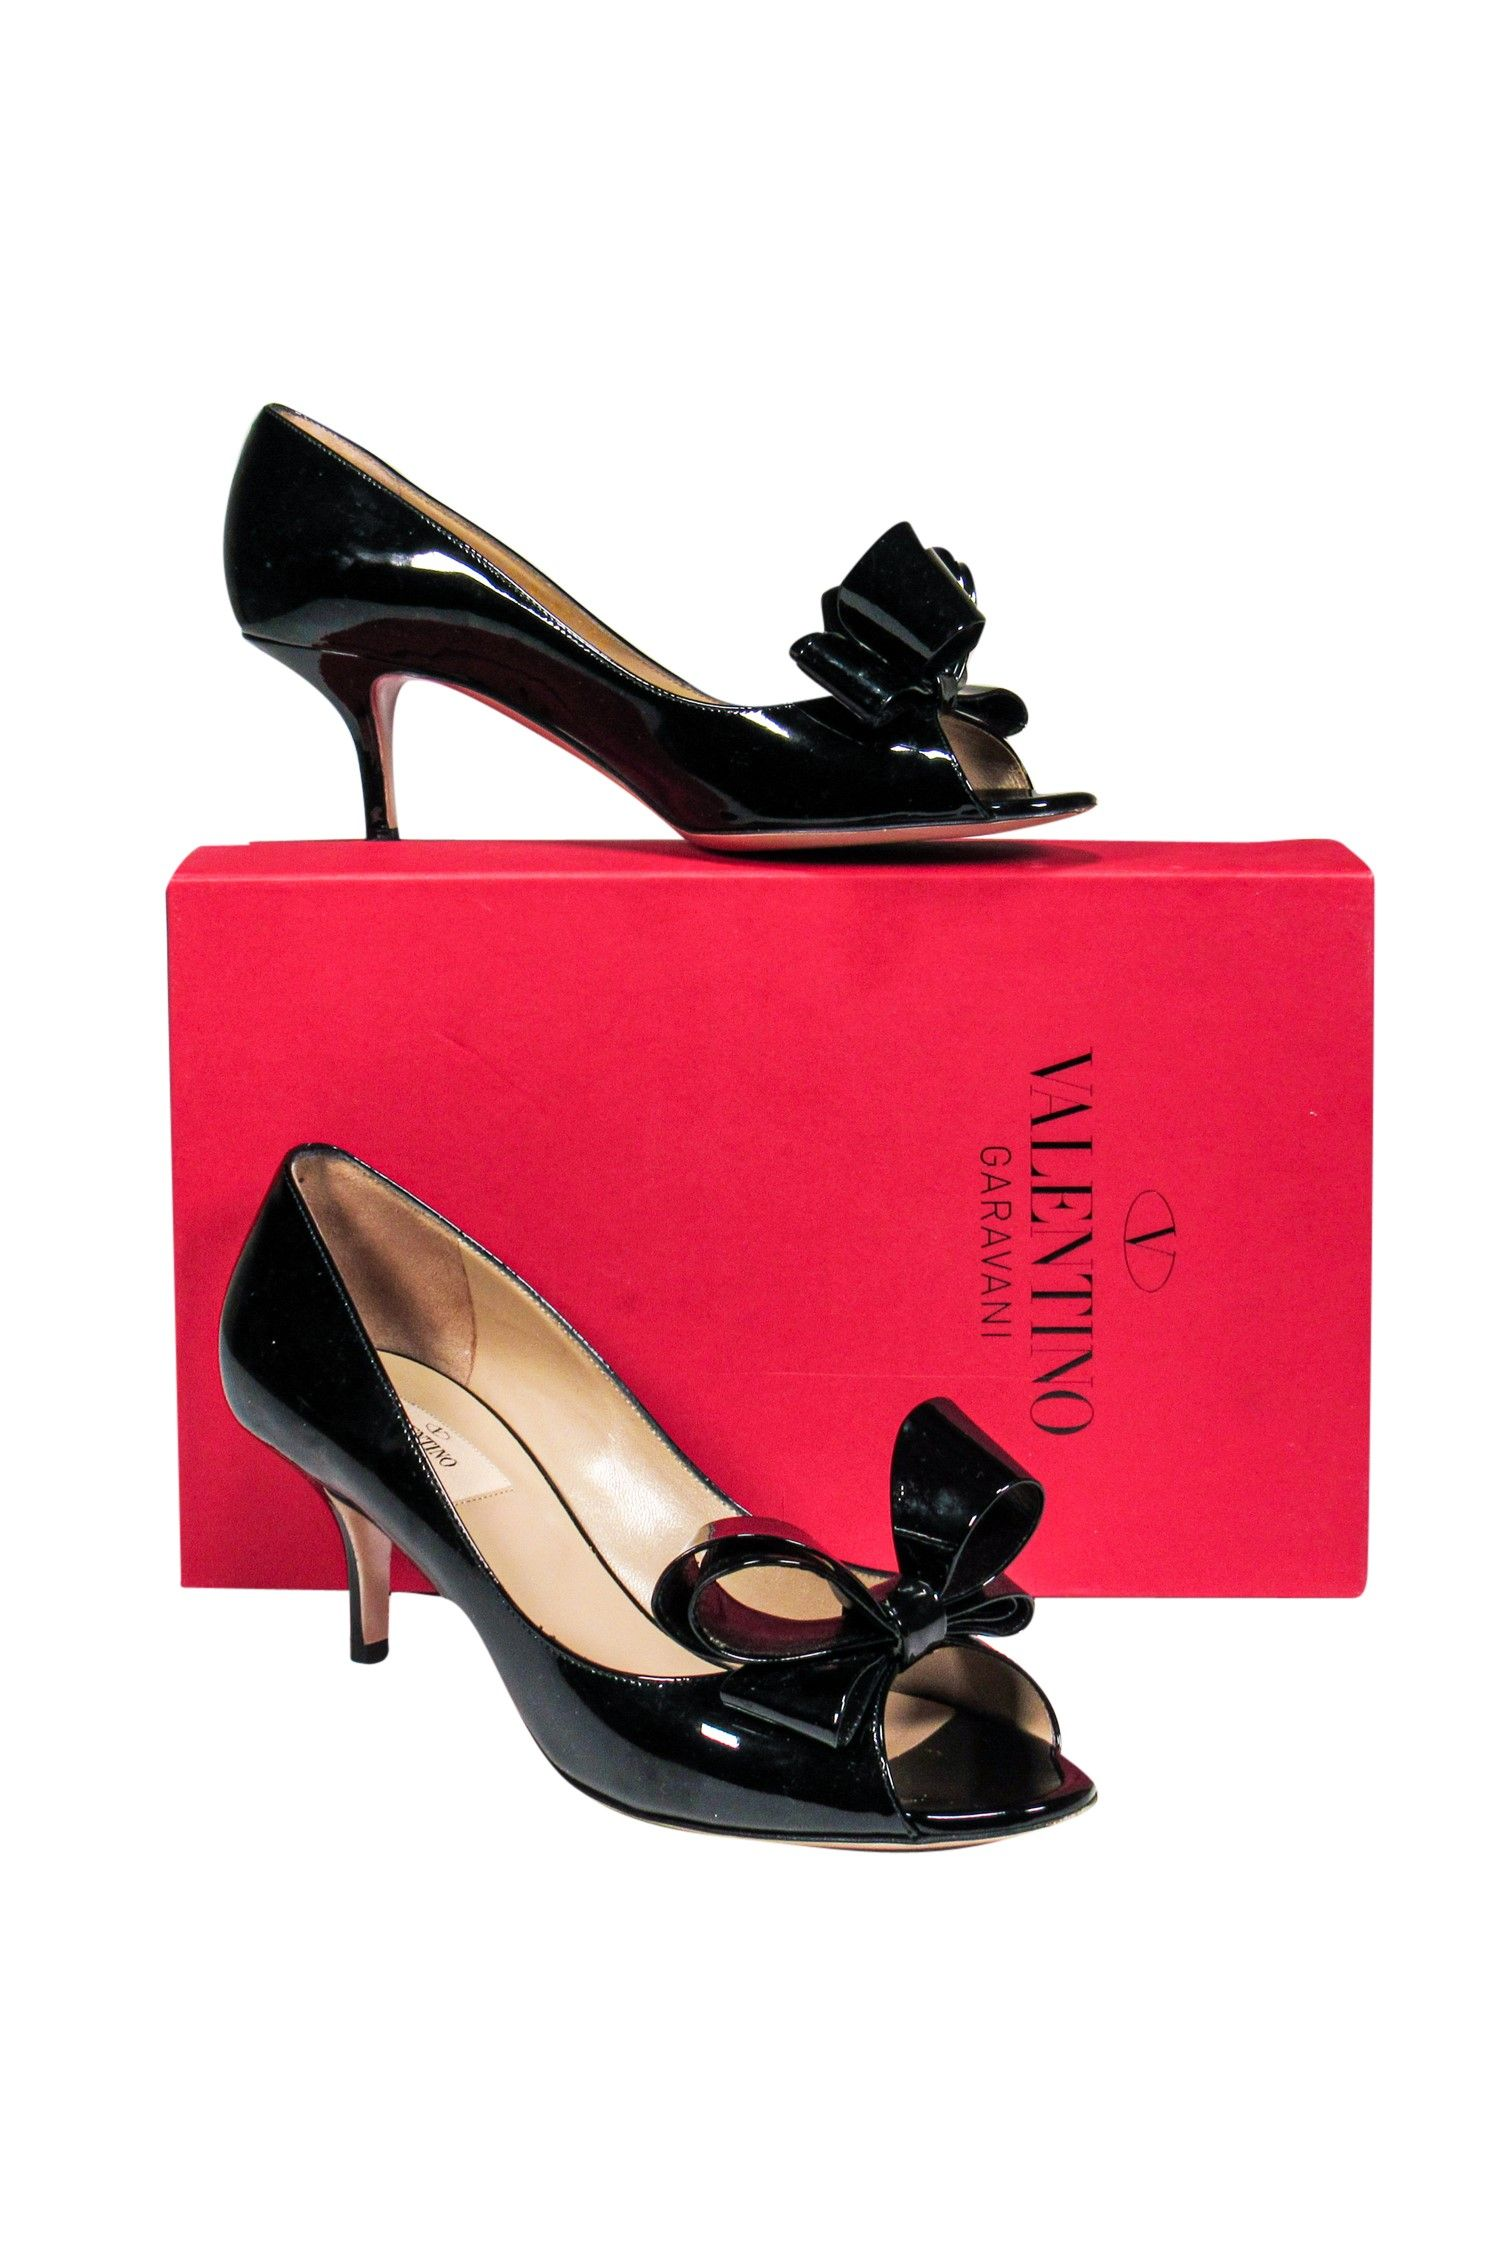 Valentino Black Patent Kitten Heels W Bow Sz 9 Current Boutique Affiliate